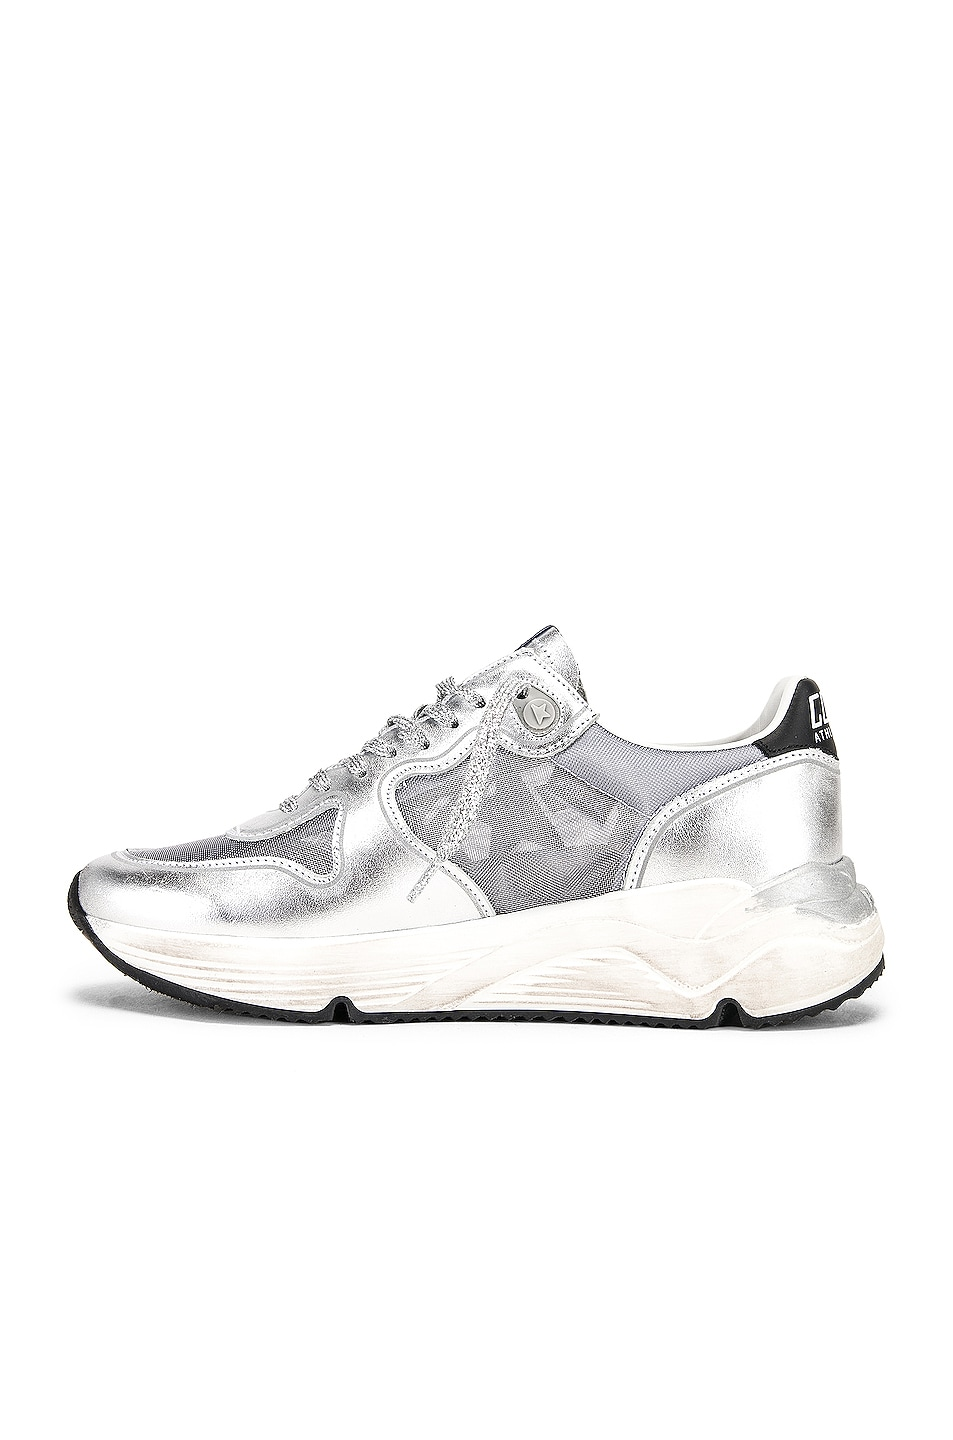 Image 5 of Golden Goose Running Sole Sneakers in Silver Net & Black Star